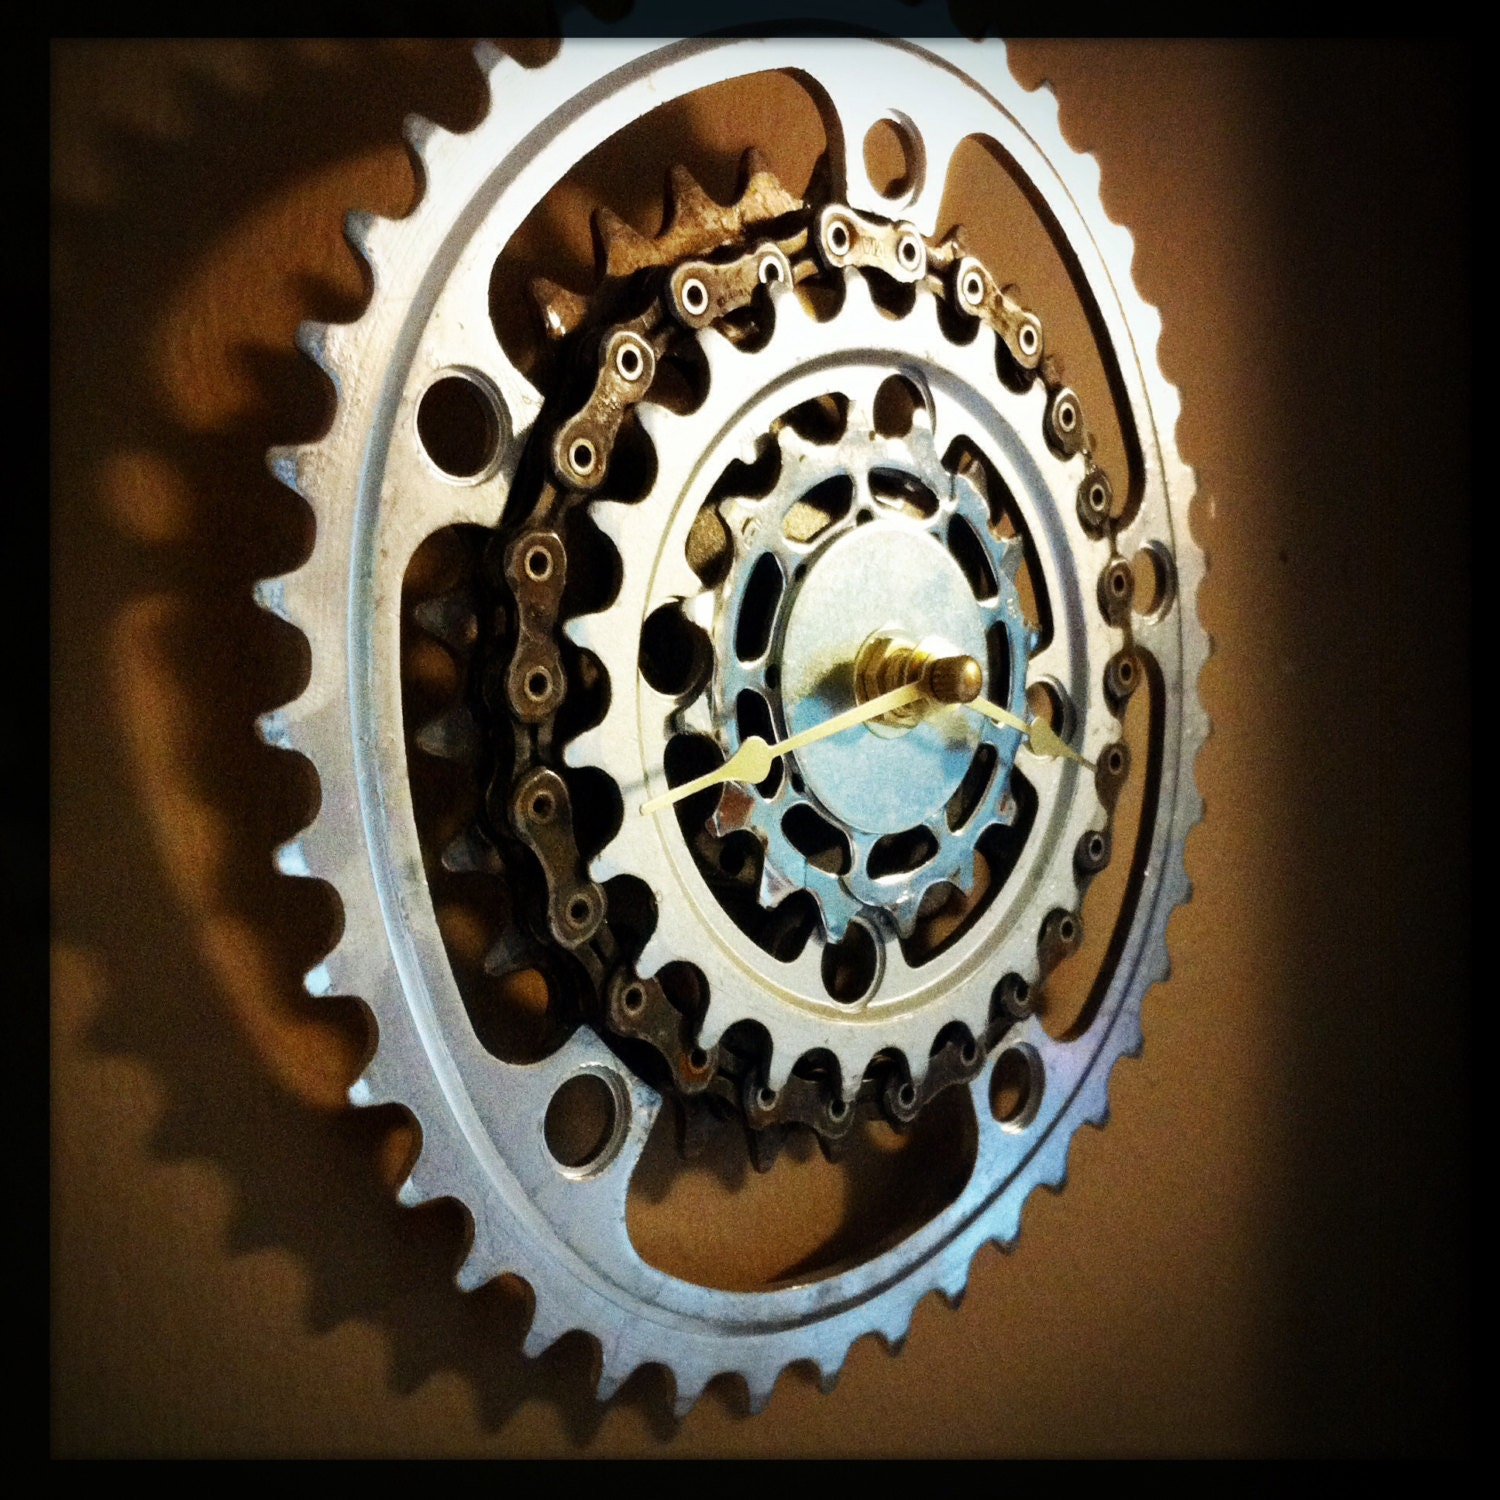 Bicycle Wall Clock Industrial Decor Steampunk Wedding Gift